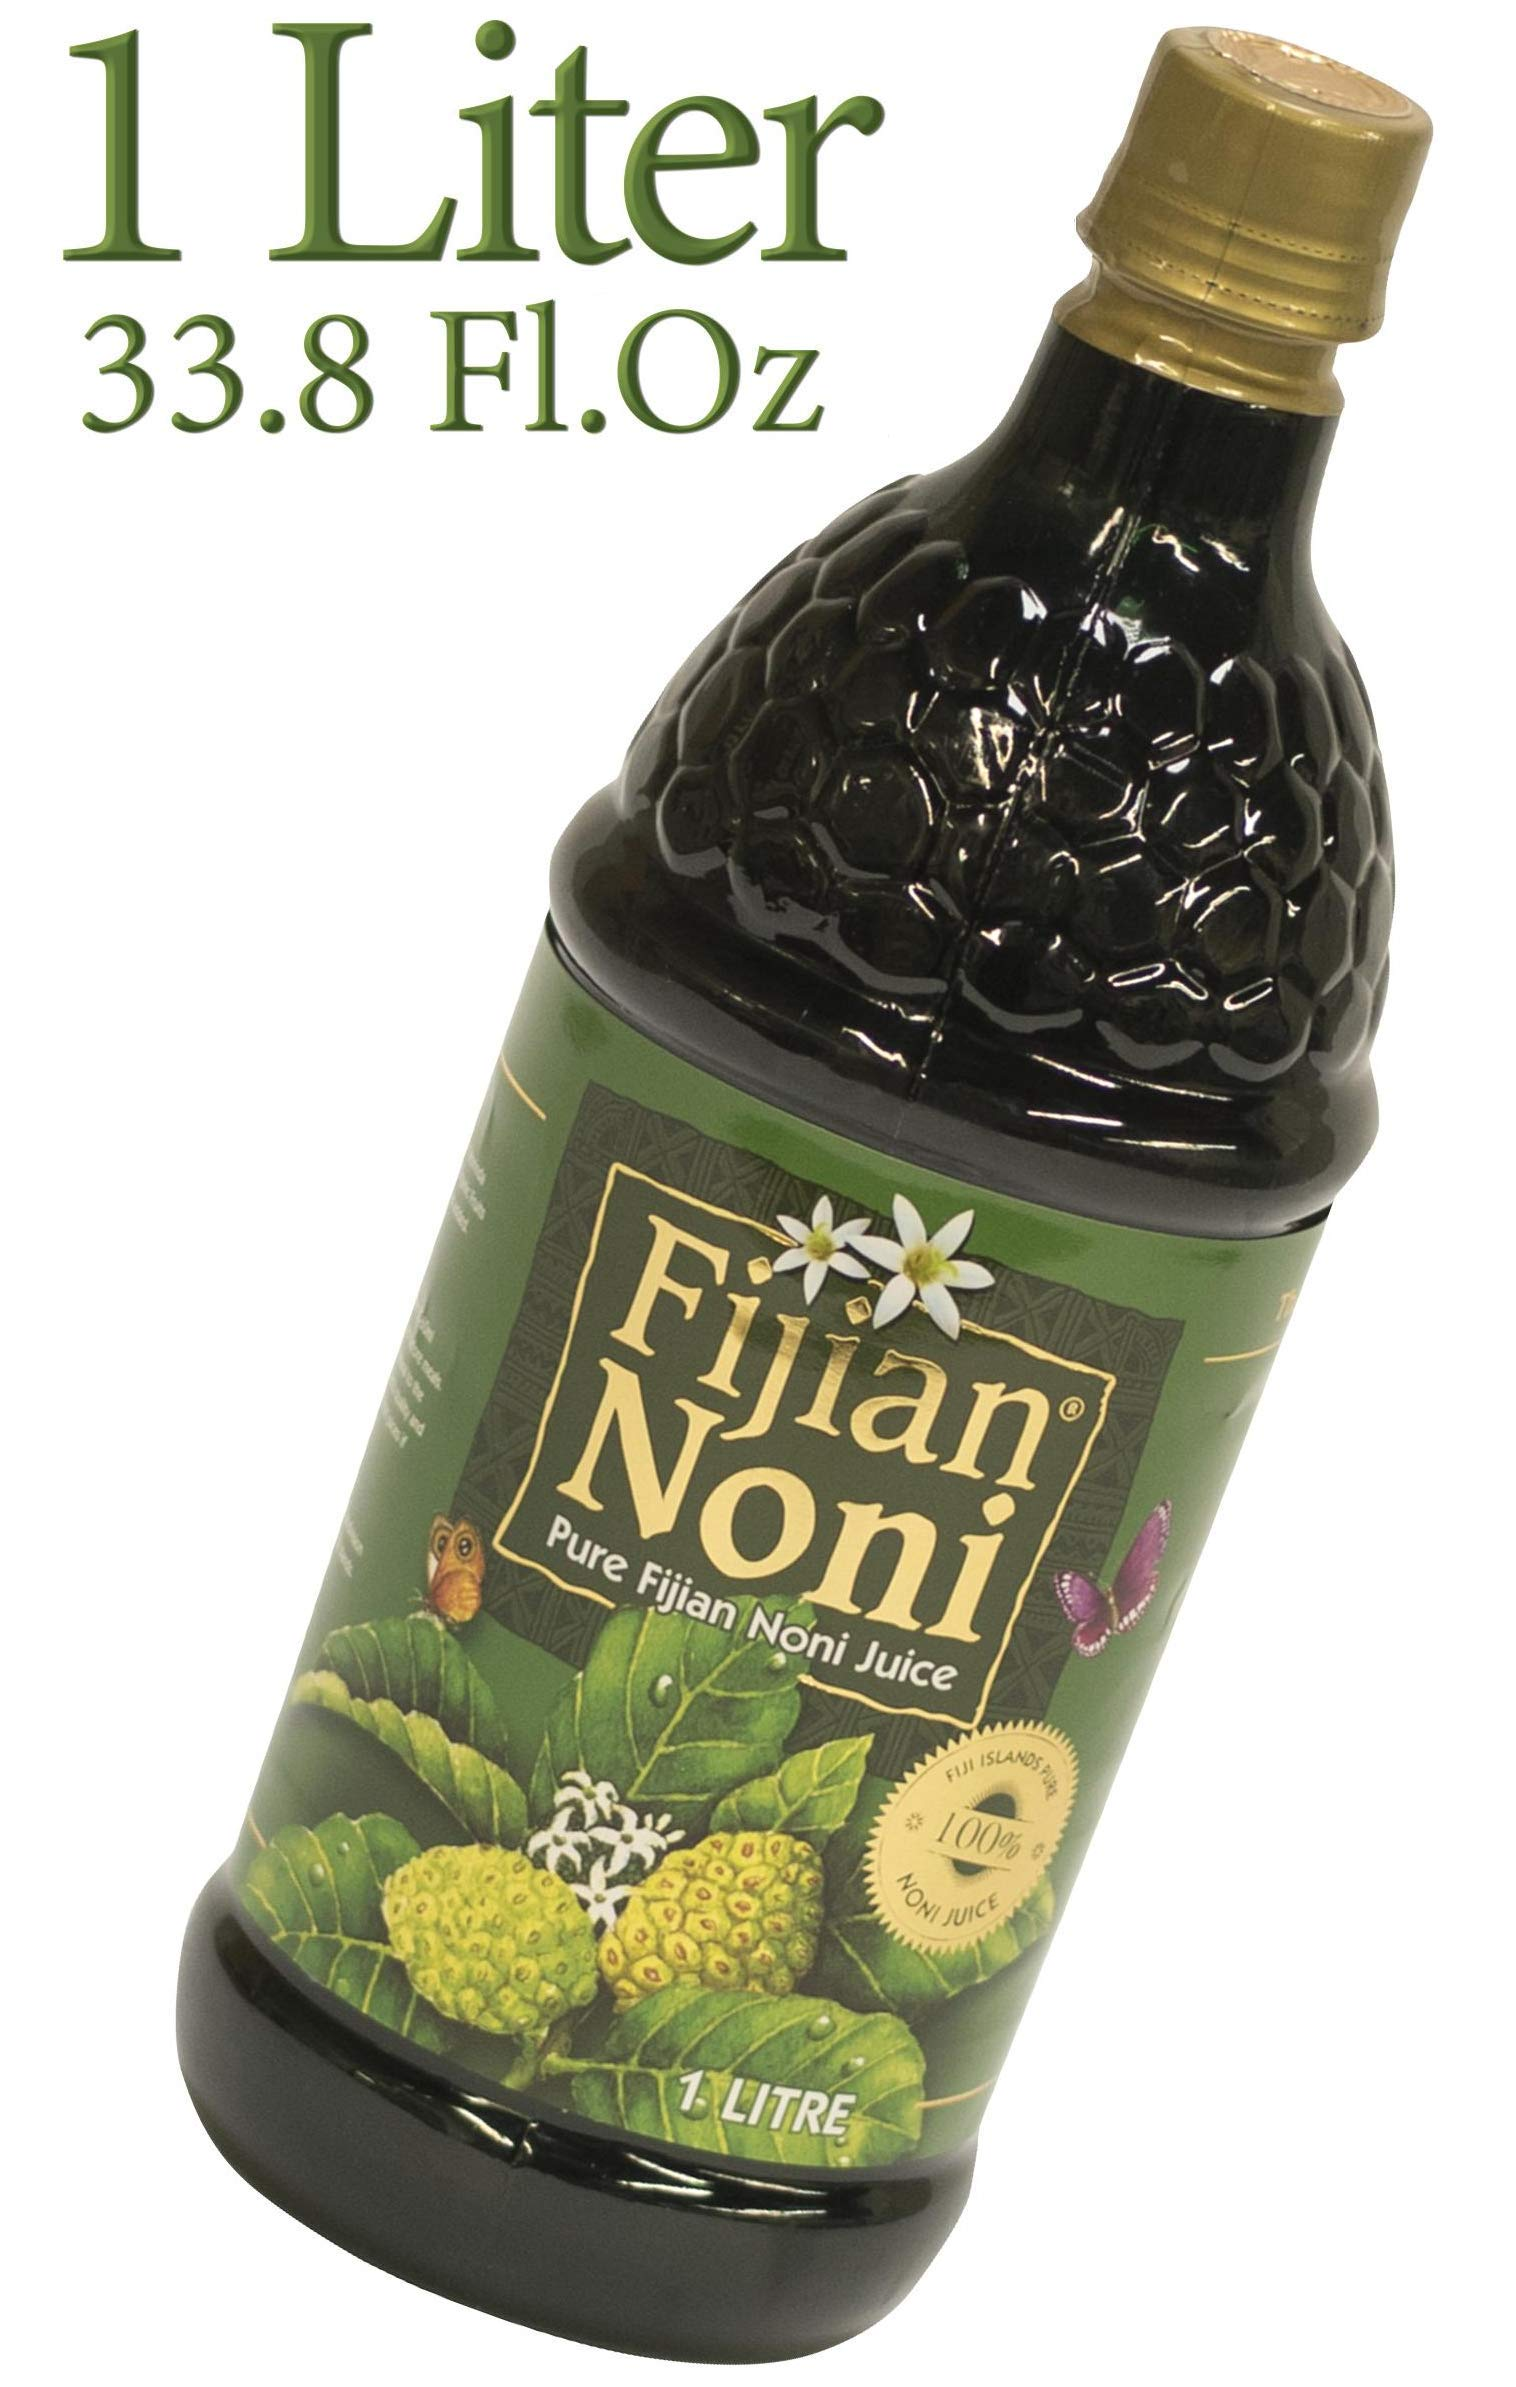 Fijian Noni® Juice 100% Pure Certified Organic. Rich in Antioxidants. Gluten-Free. Today's Deal (1 Liter Bottle) Nature's Super Food Noni Juice from Fiji.